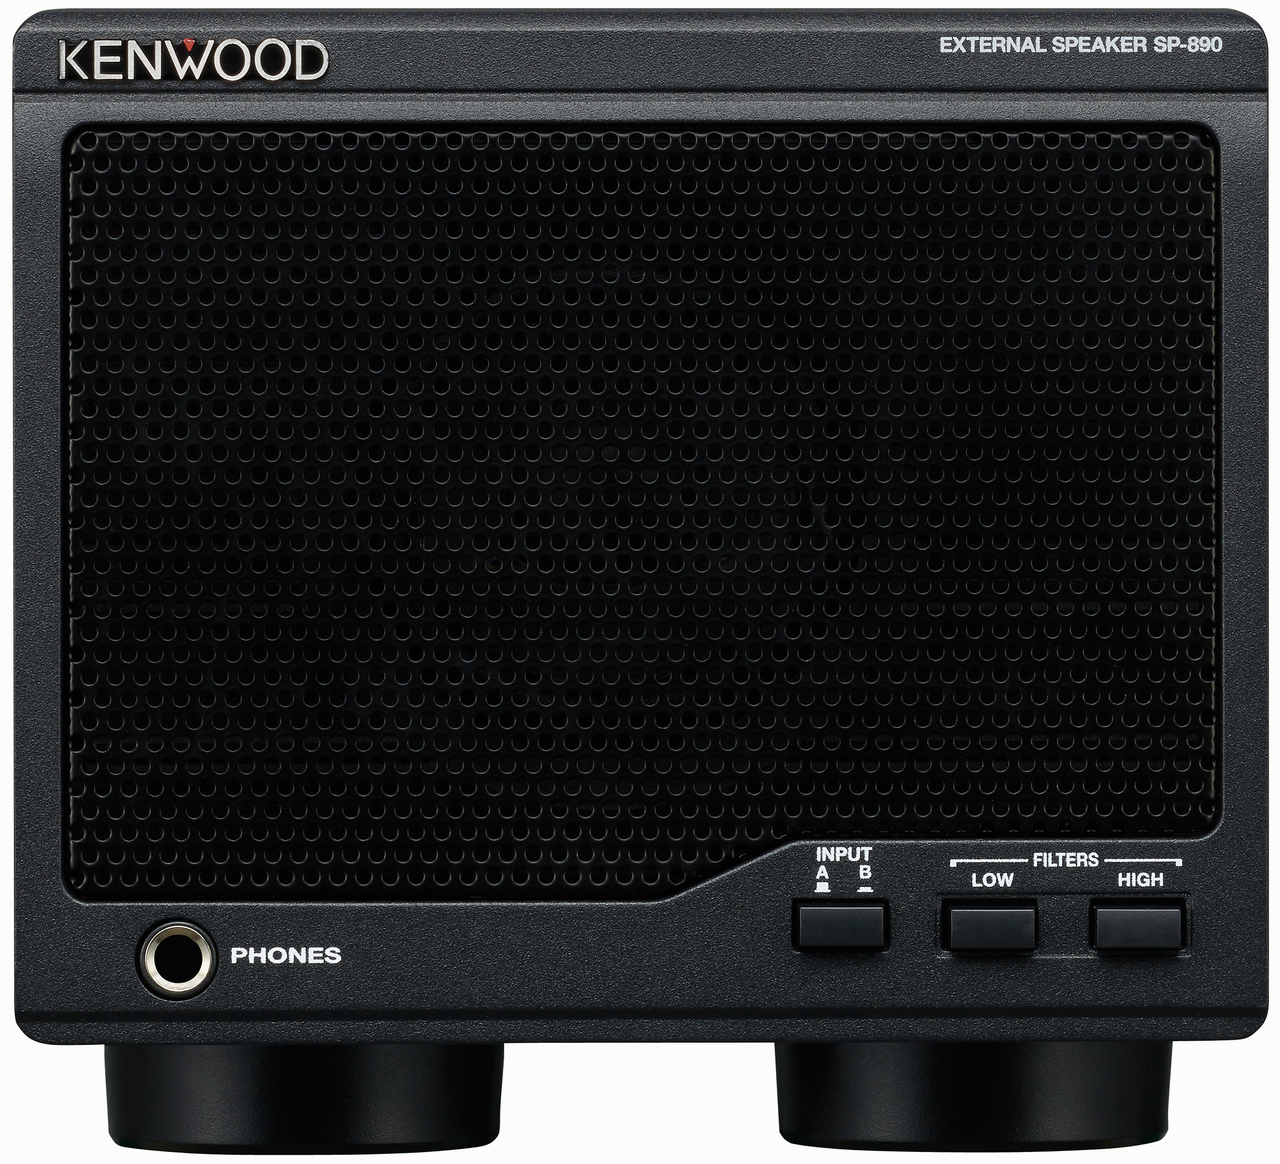 ALTAVOZ KENWOOD SP-890W